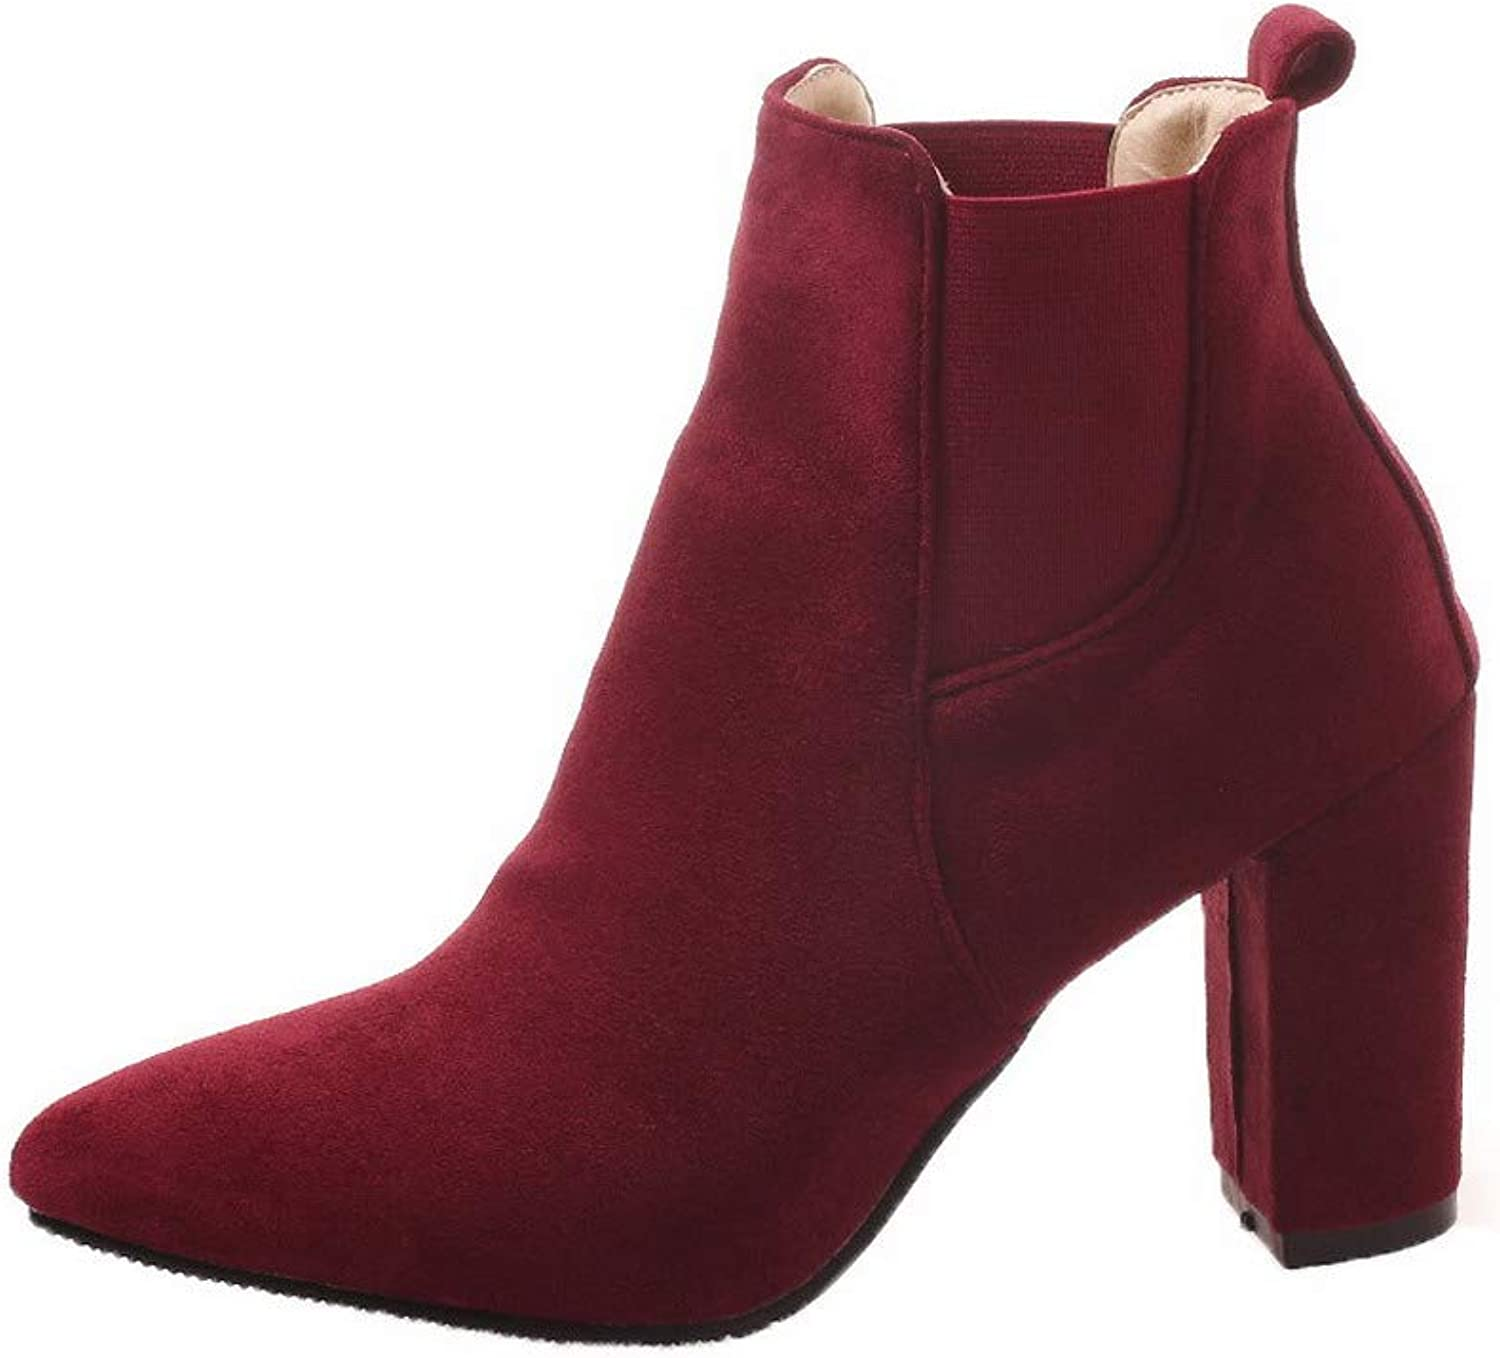 AllhqFashion Women's Solid High-Heels Pointed-Toe Imitated Suede Pull-On Boots, FBUXD116928